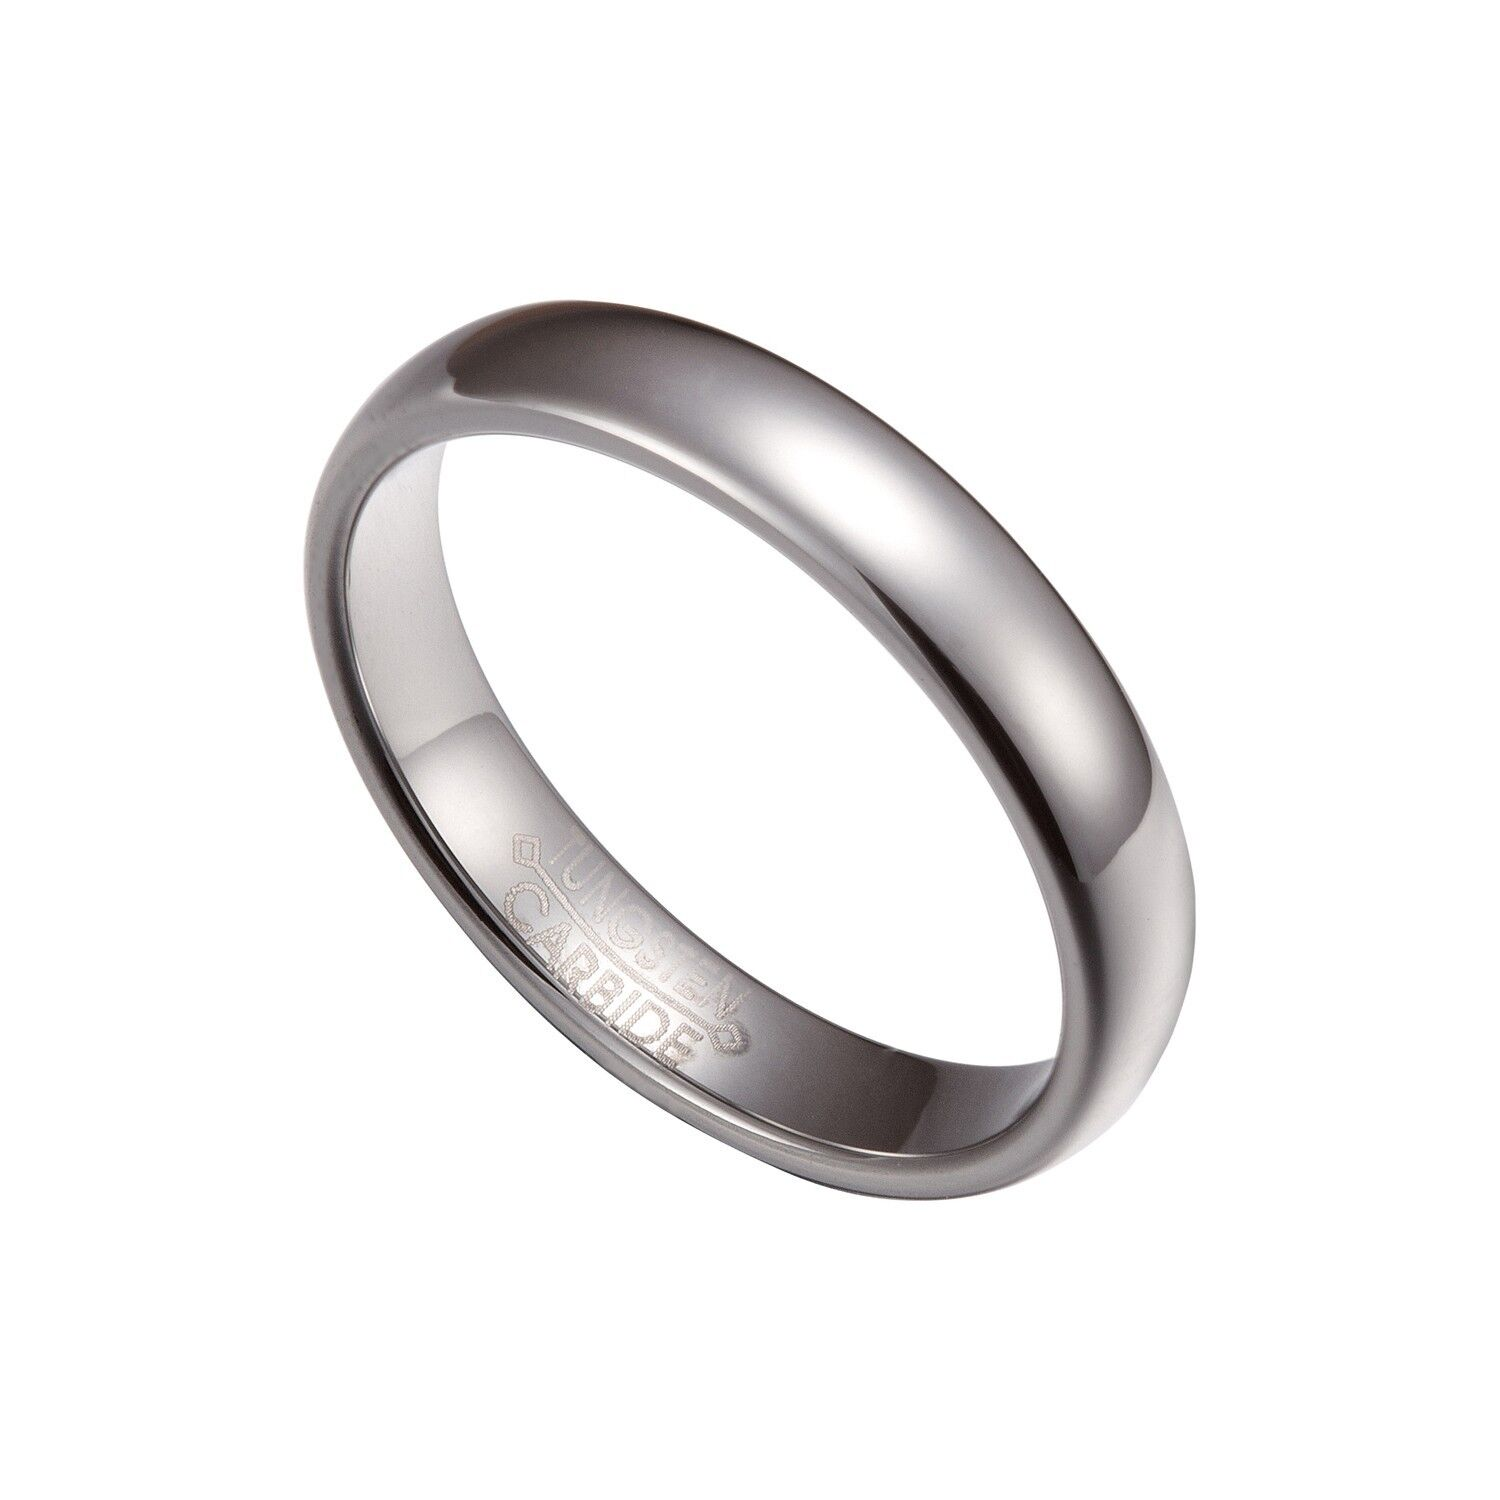 Silver Tungsten Carbide 4mm Comfort Fit Plain Rings